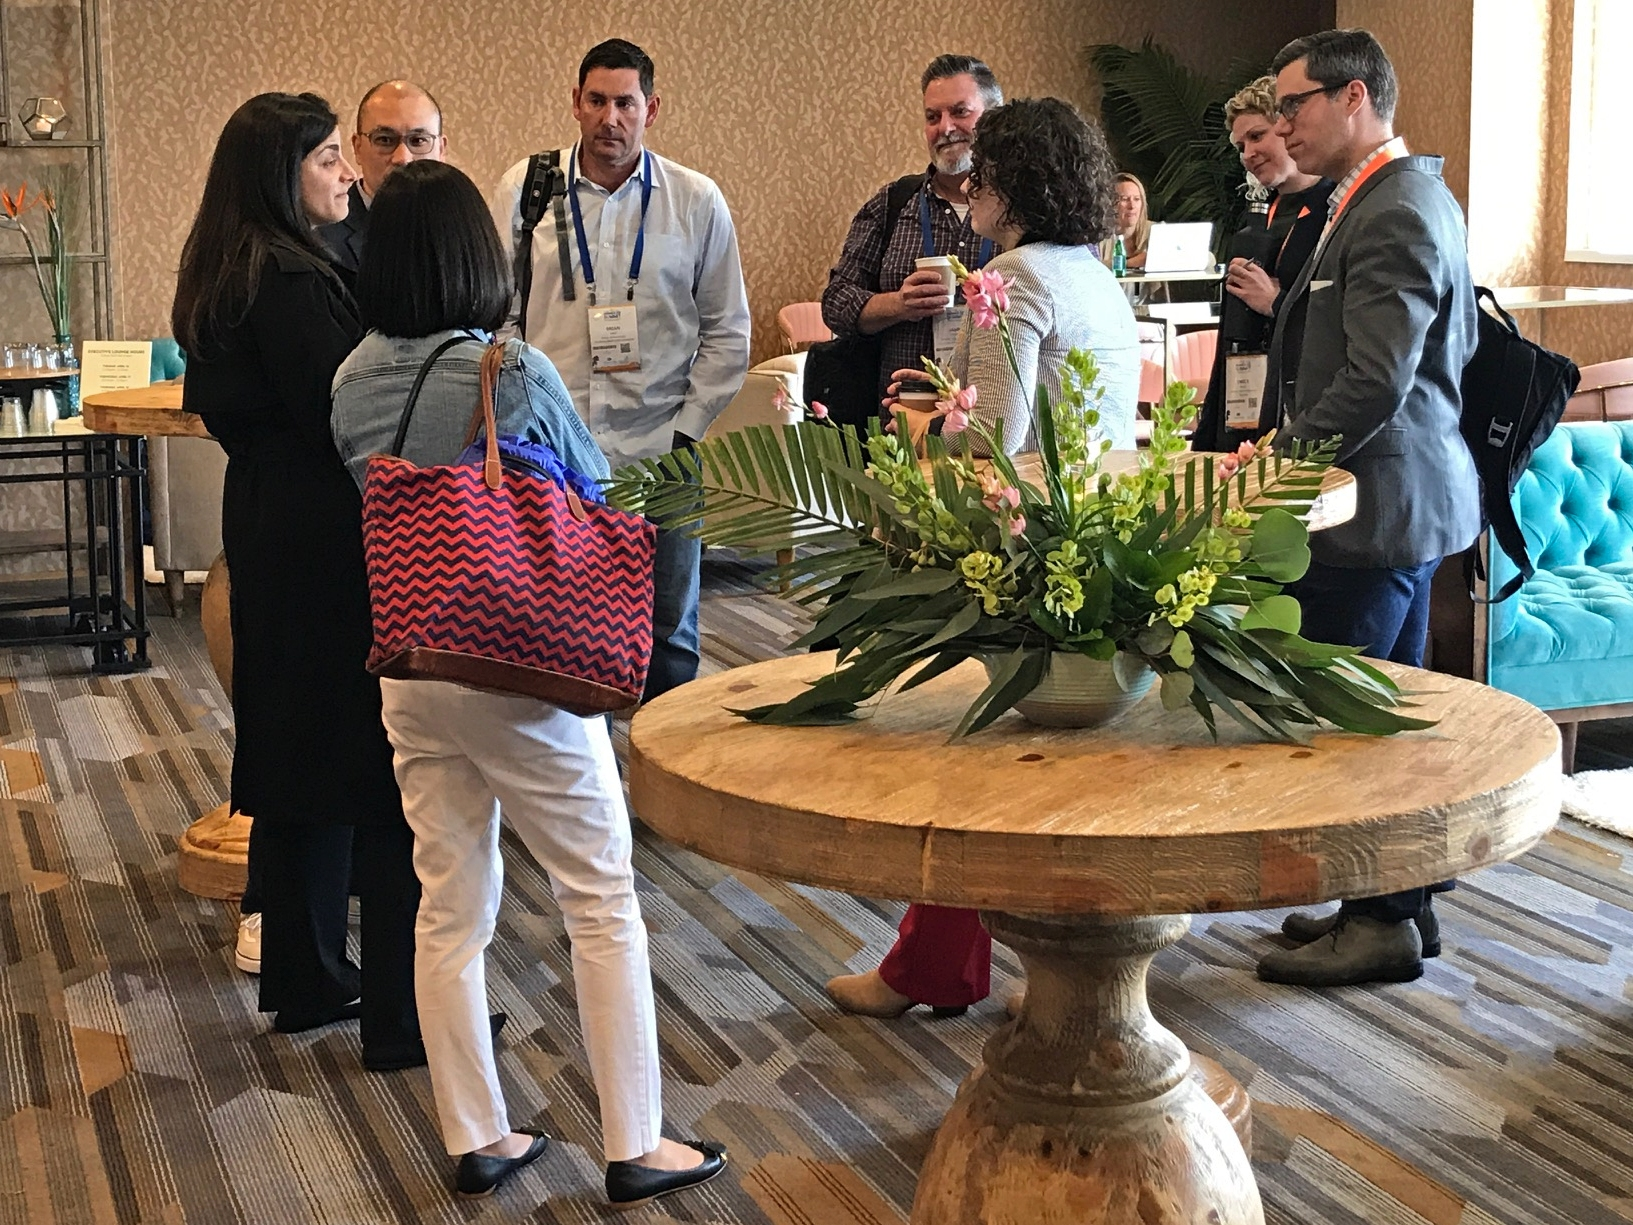 Appirio Lounge at the Higher Ed Summit 2019 in San Diego